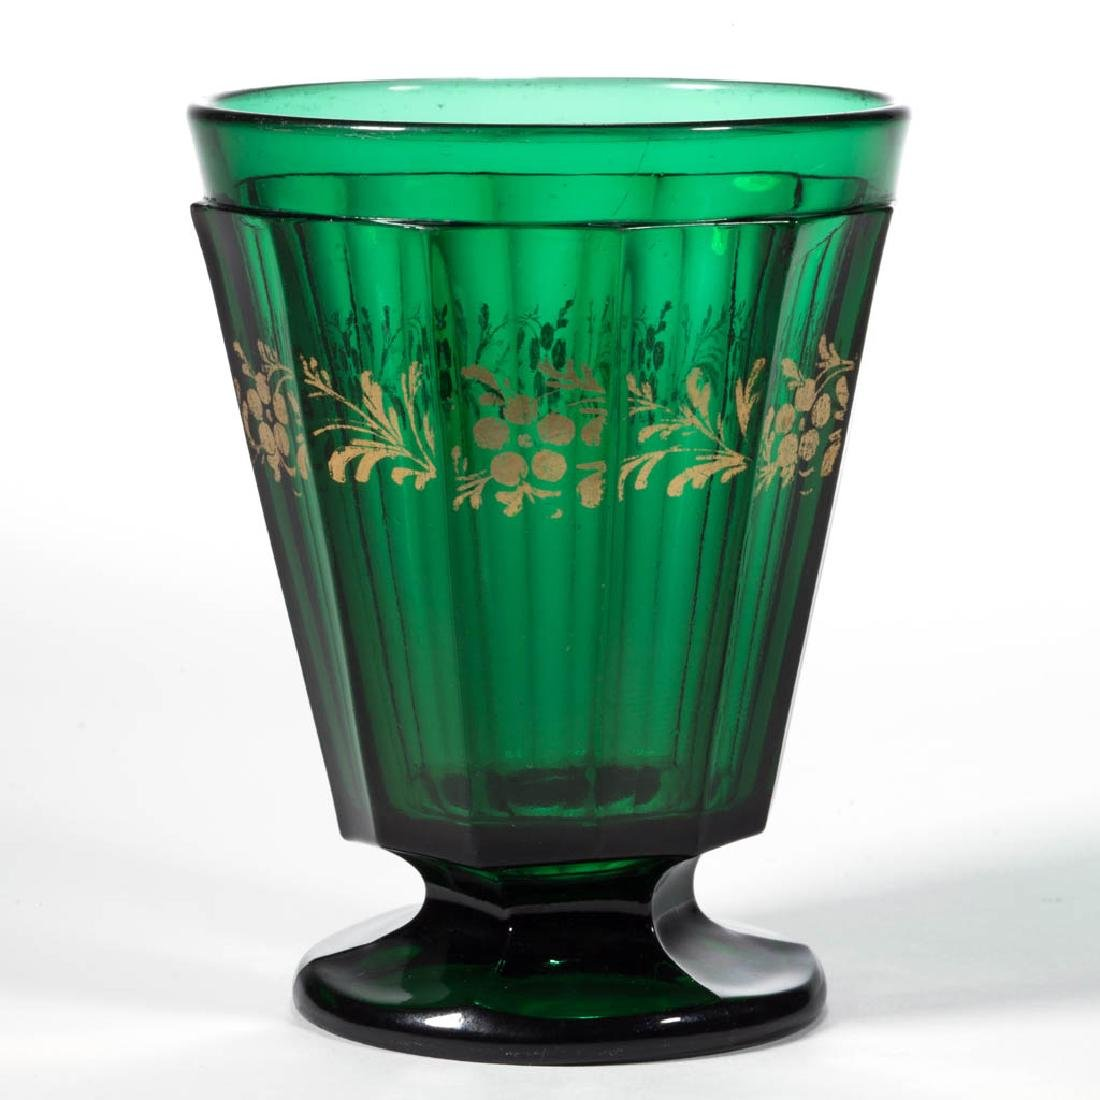 PRESSED 12-PANEL FOOTED TUMBLER